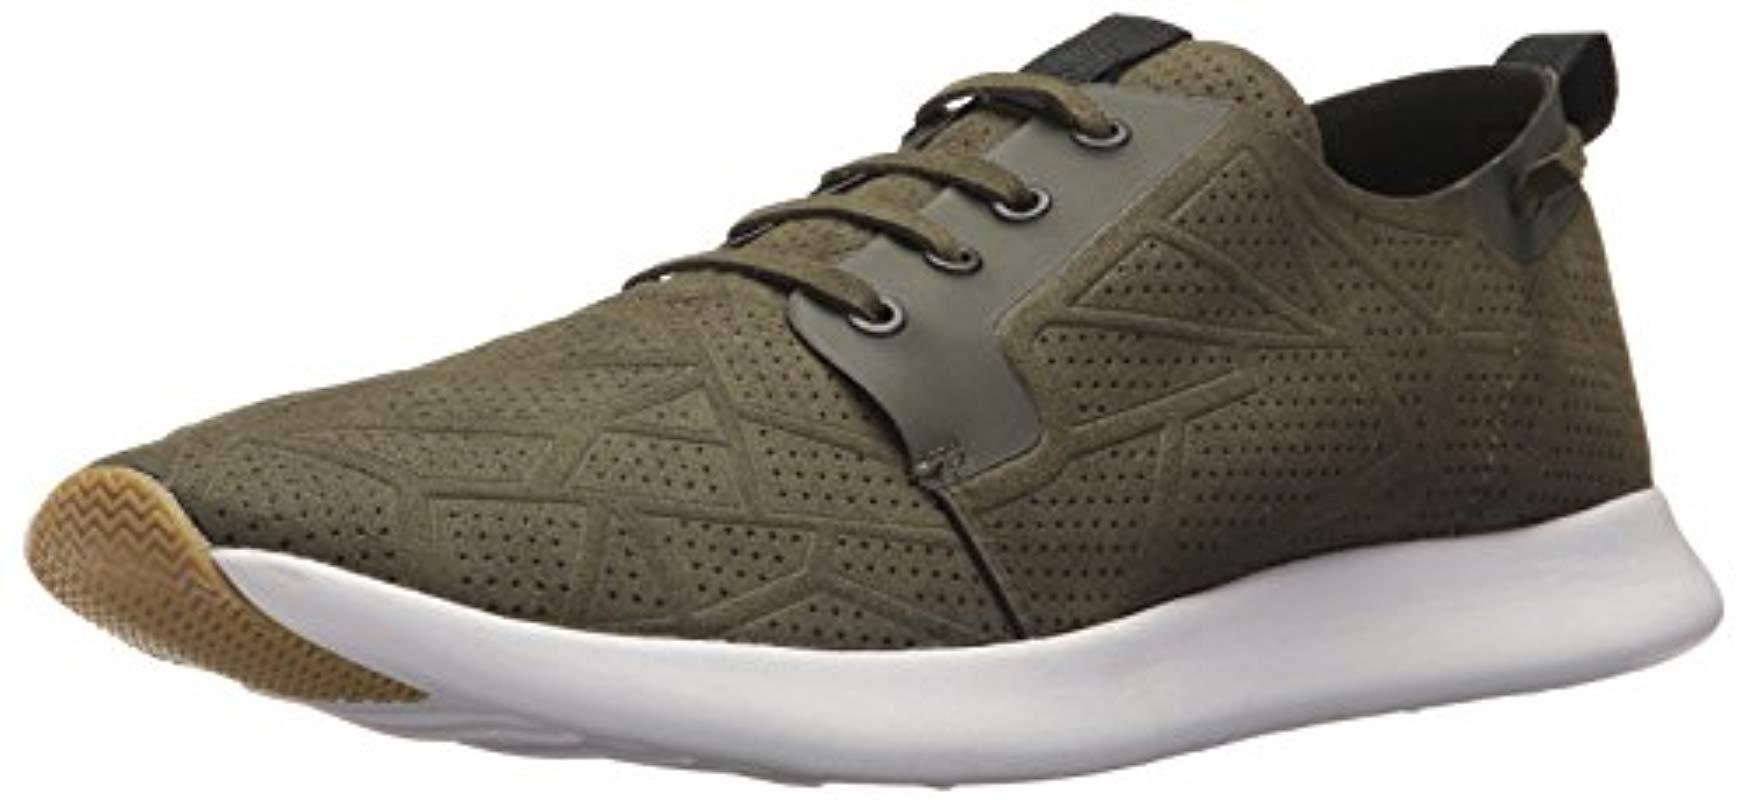 319188ace2f Lyst - Steve Madden Batali Sneaker in Green for Men - Save 1%